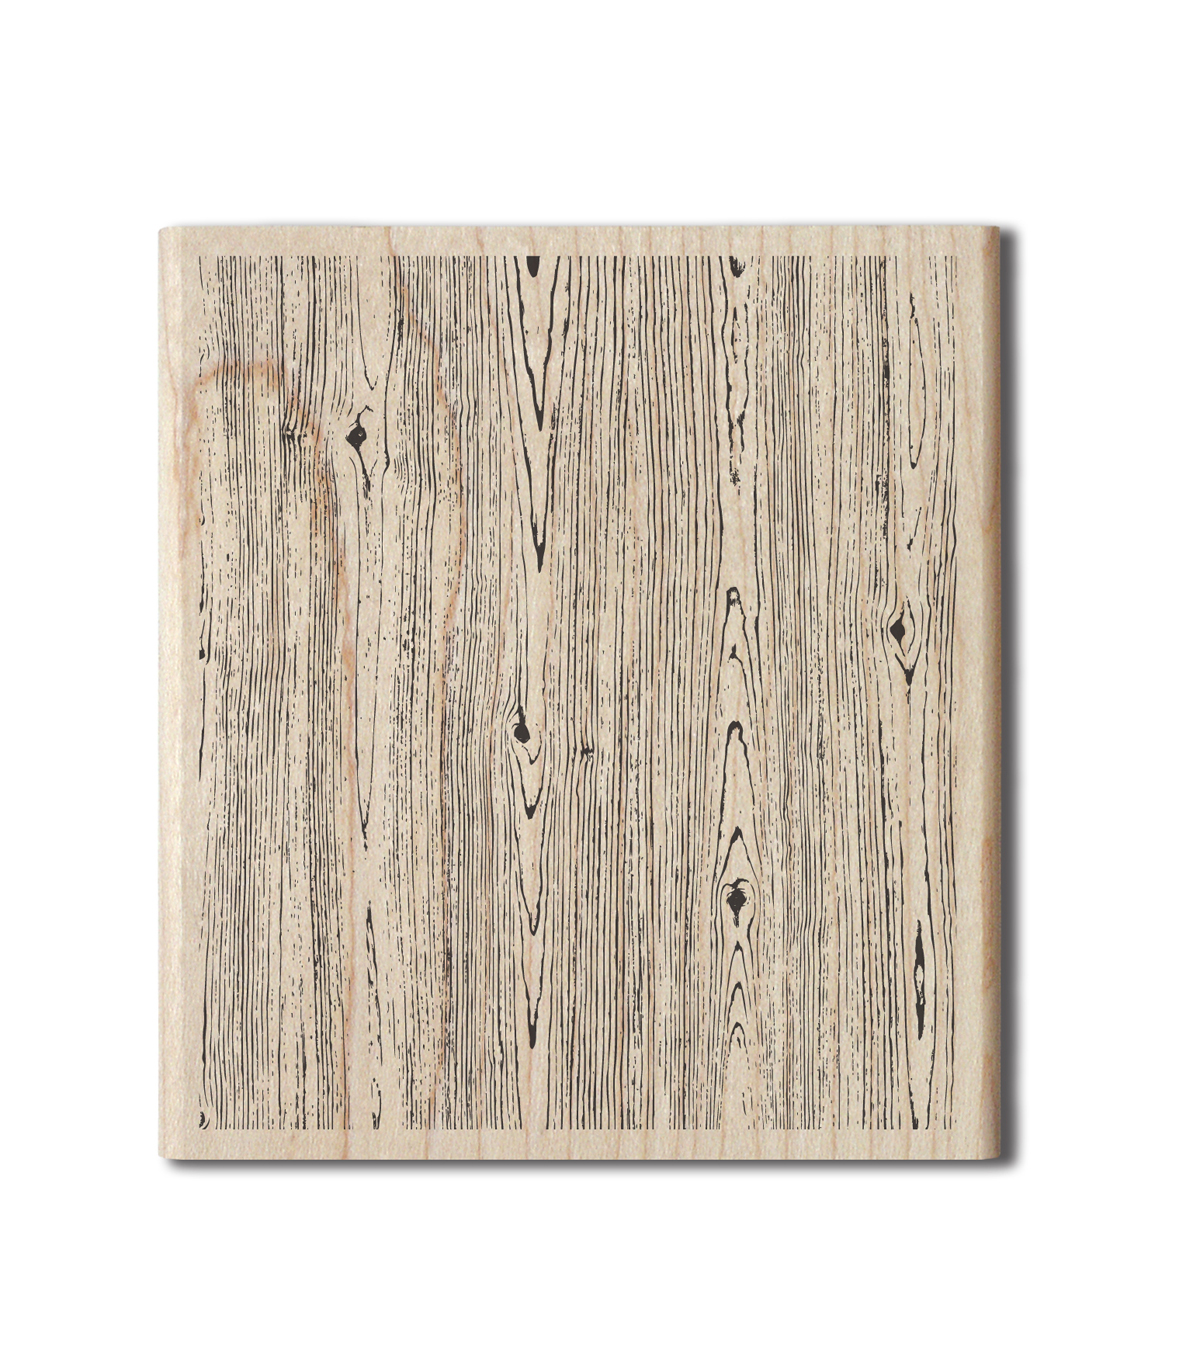 Jillibean Soup Wood Stamp-Wood Grain Background